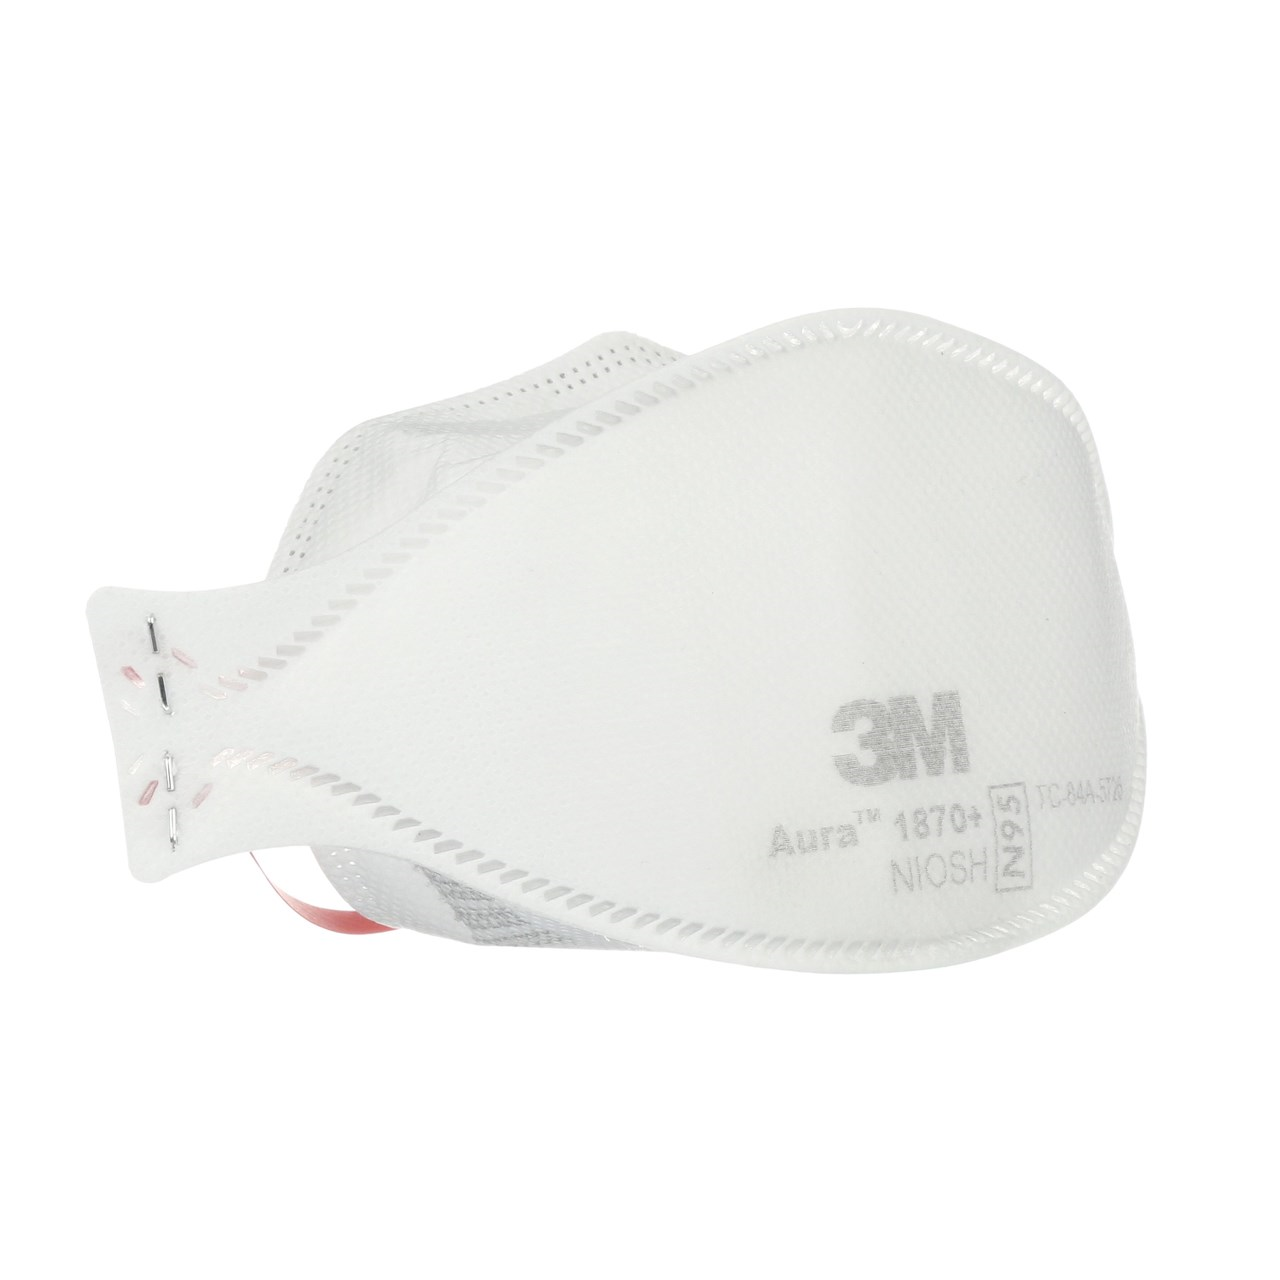 3m high fluid resistant surgical mask 1835